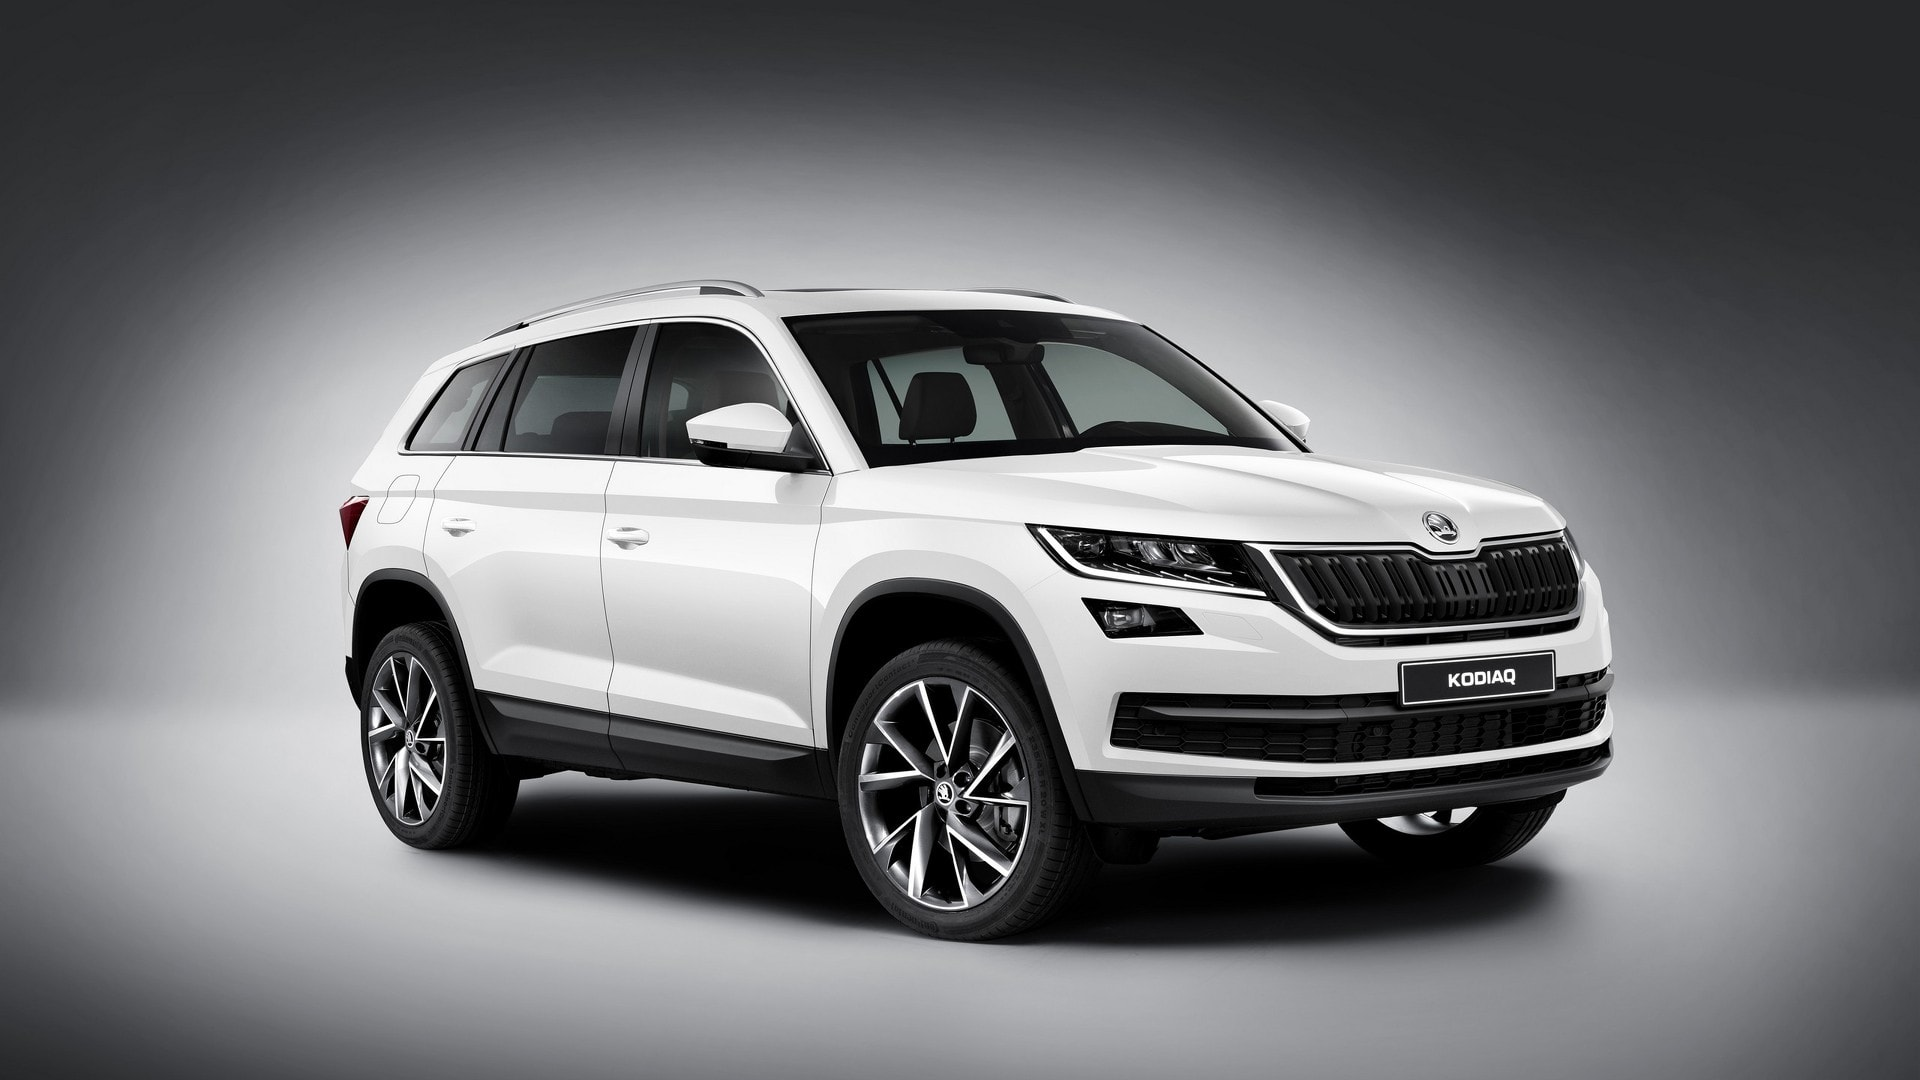 Skoda Kodiaq widescreen wallpapers